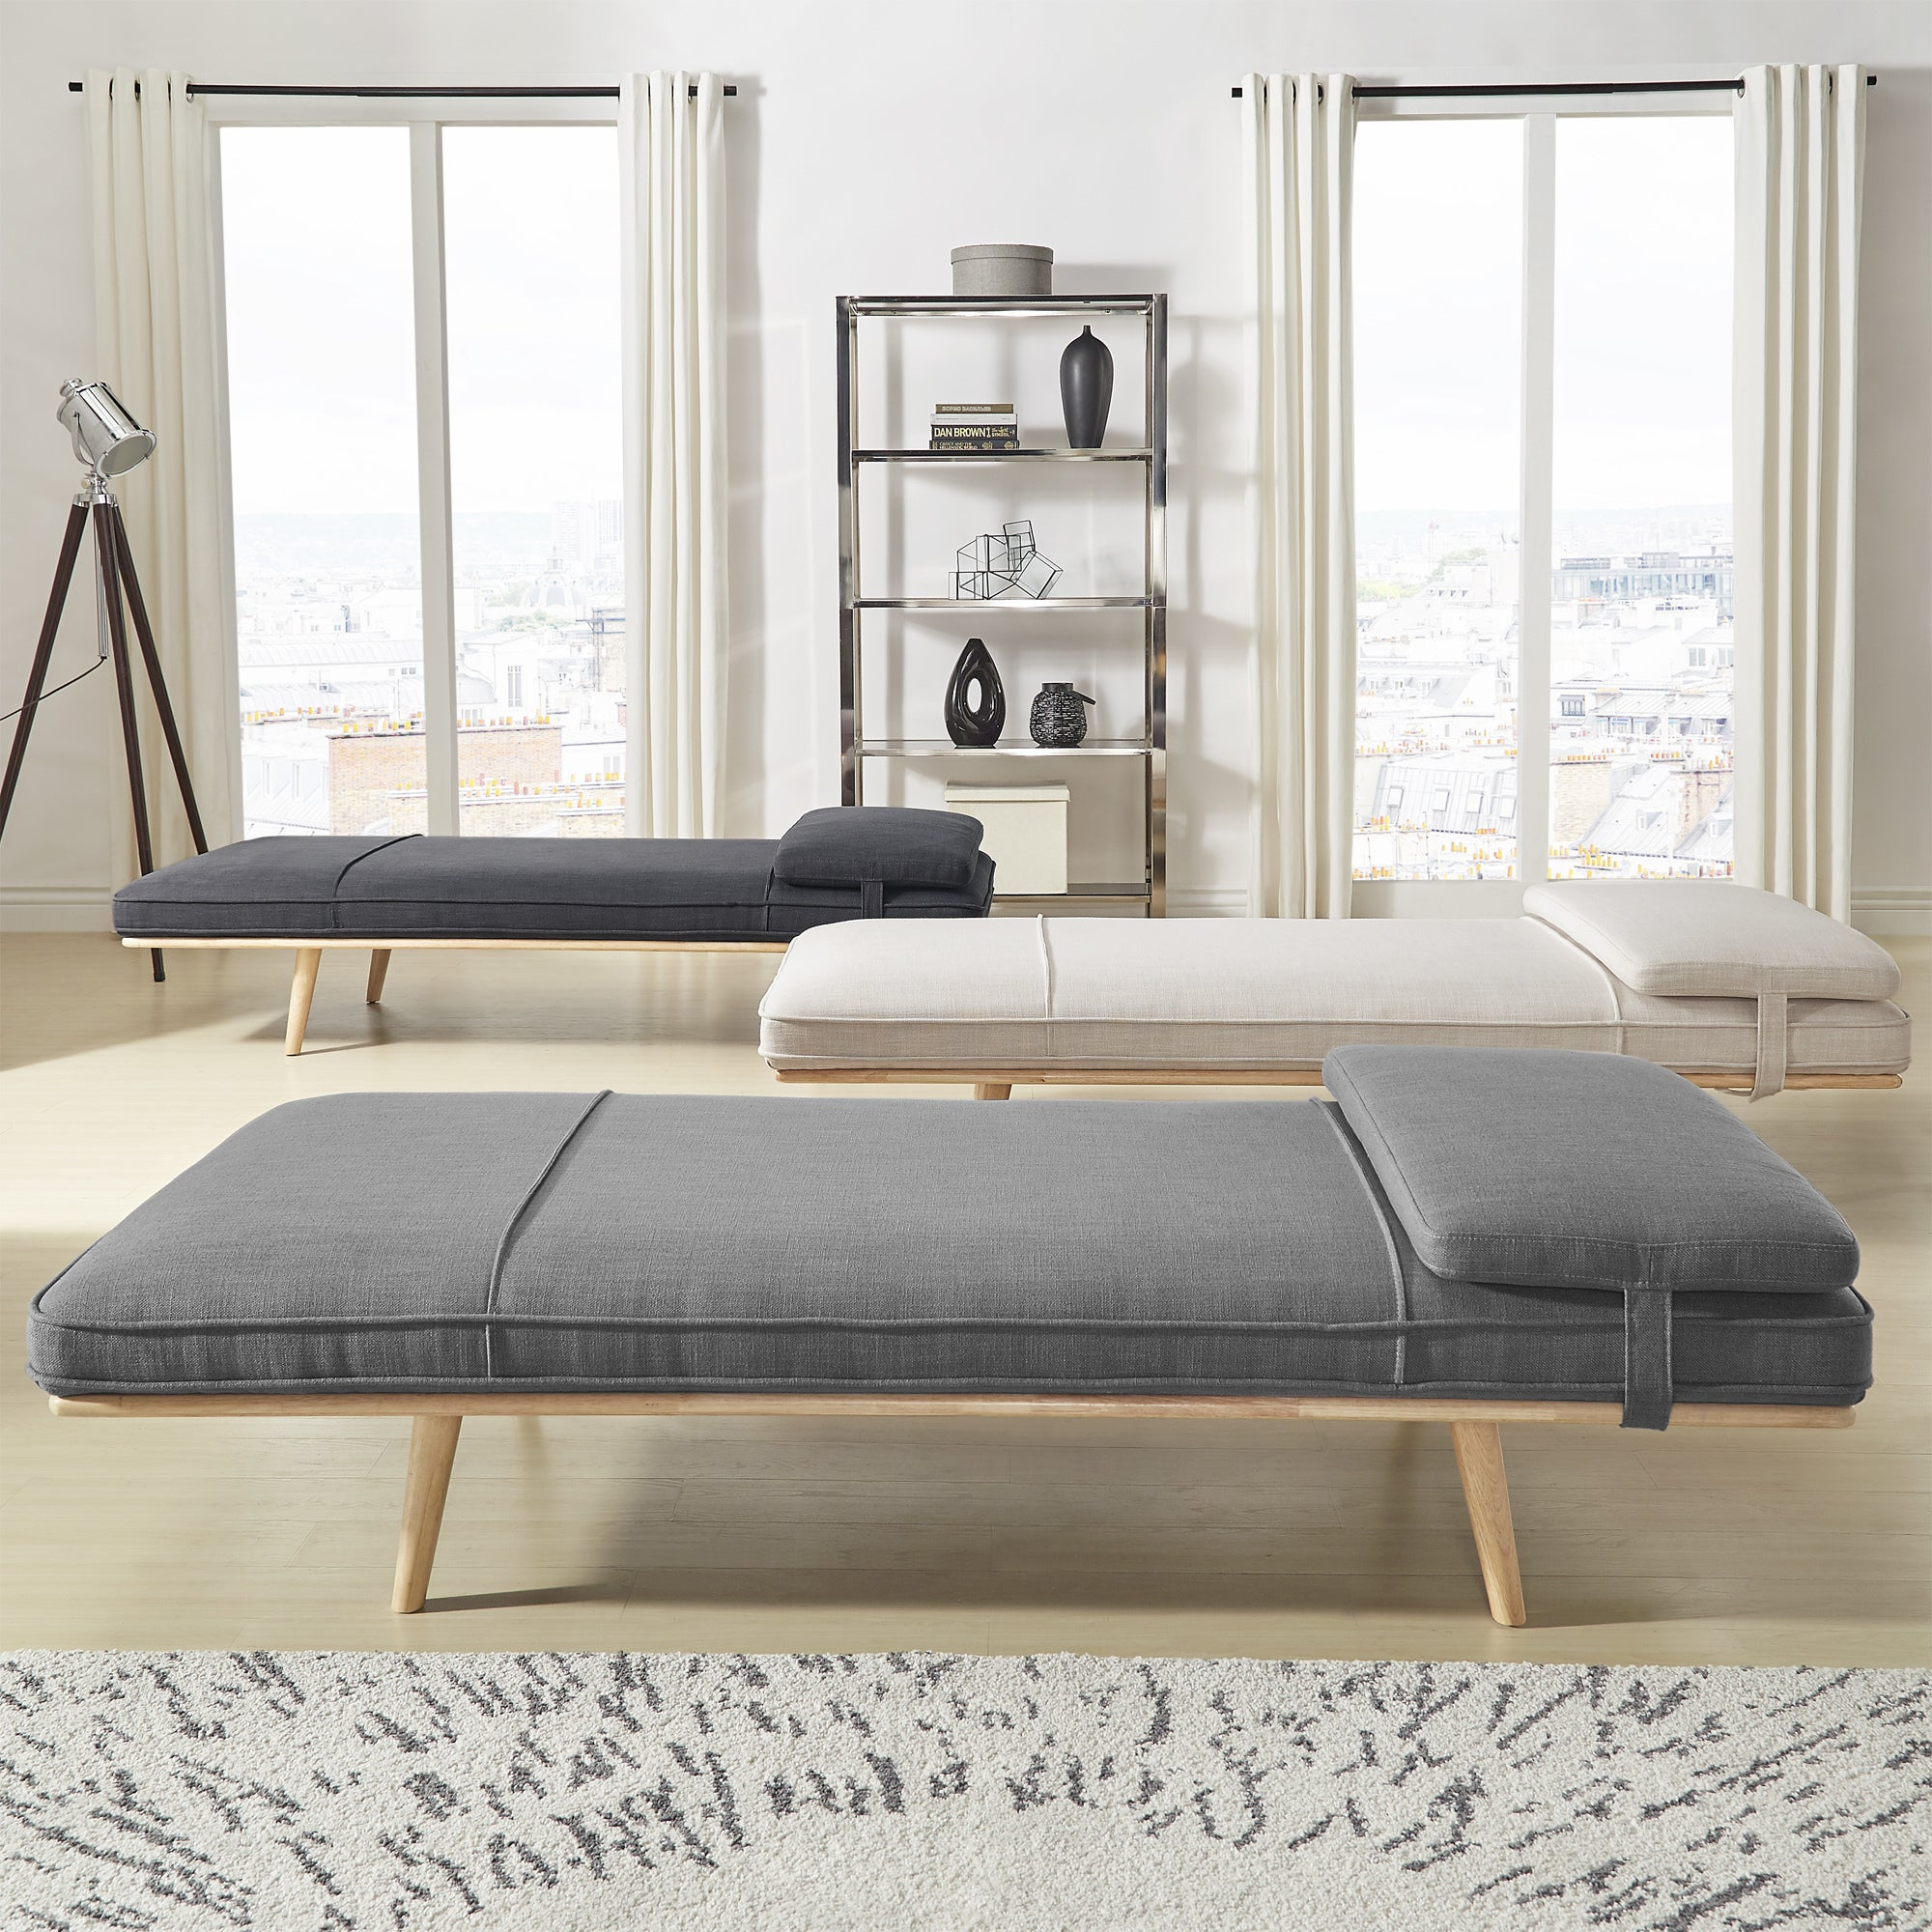 Chiyo-Chaise-Lounge-Oversize-Bench-with-Pillow-iNSPIRE-